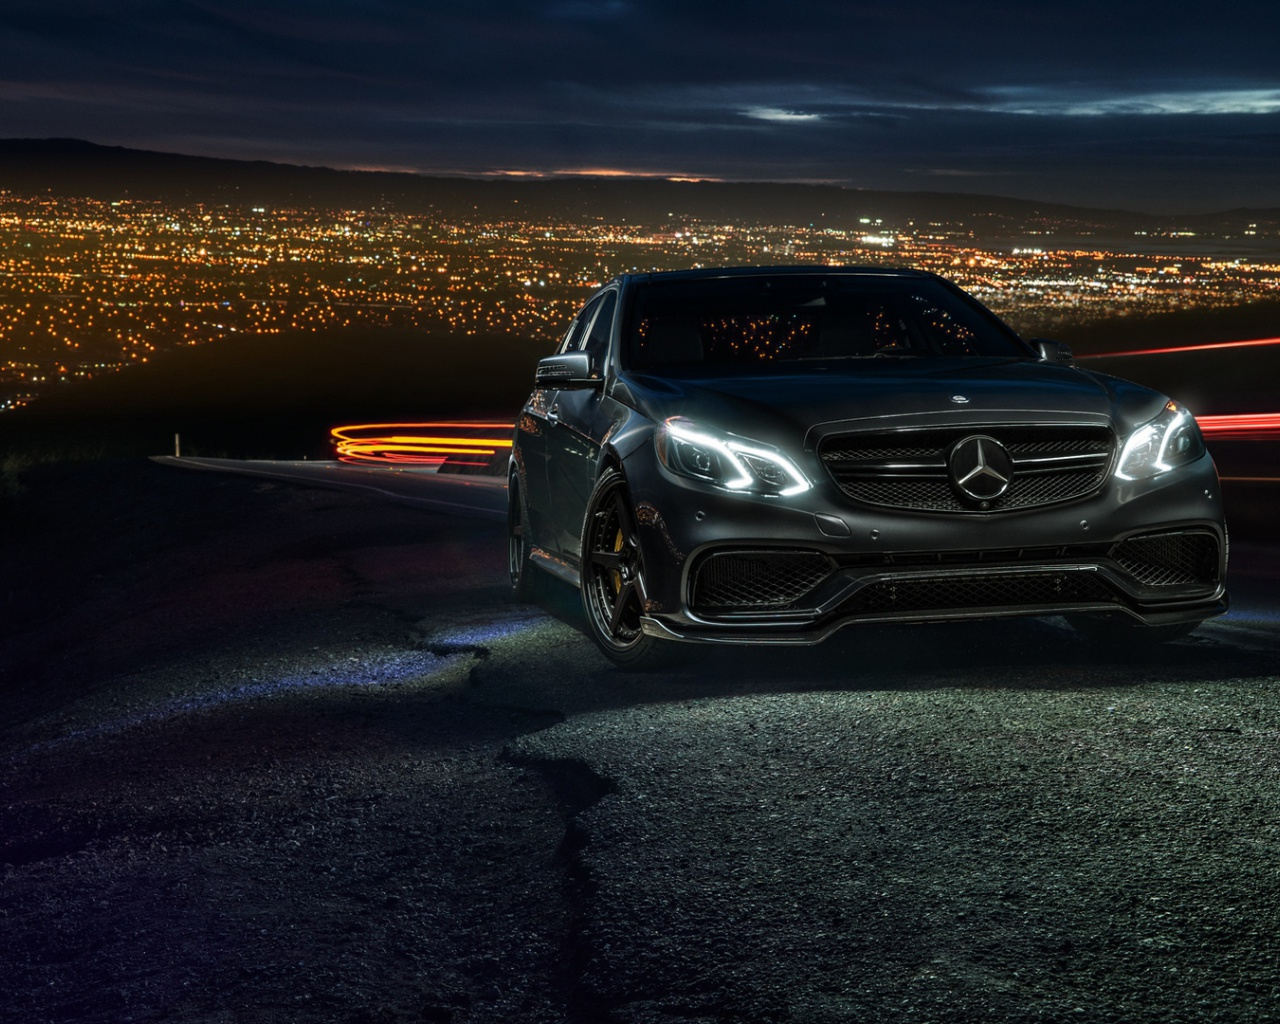 1280x1024 Mercedes Benz E63 AMG S Desktop PC And Mac Wallpaper